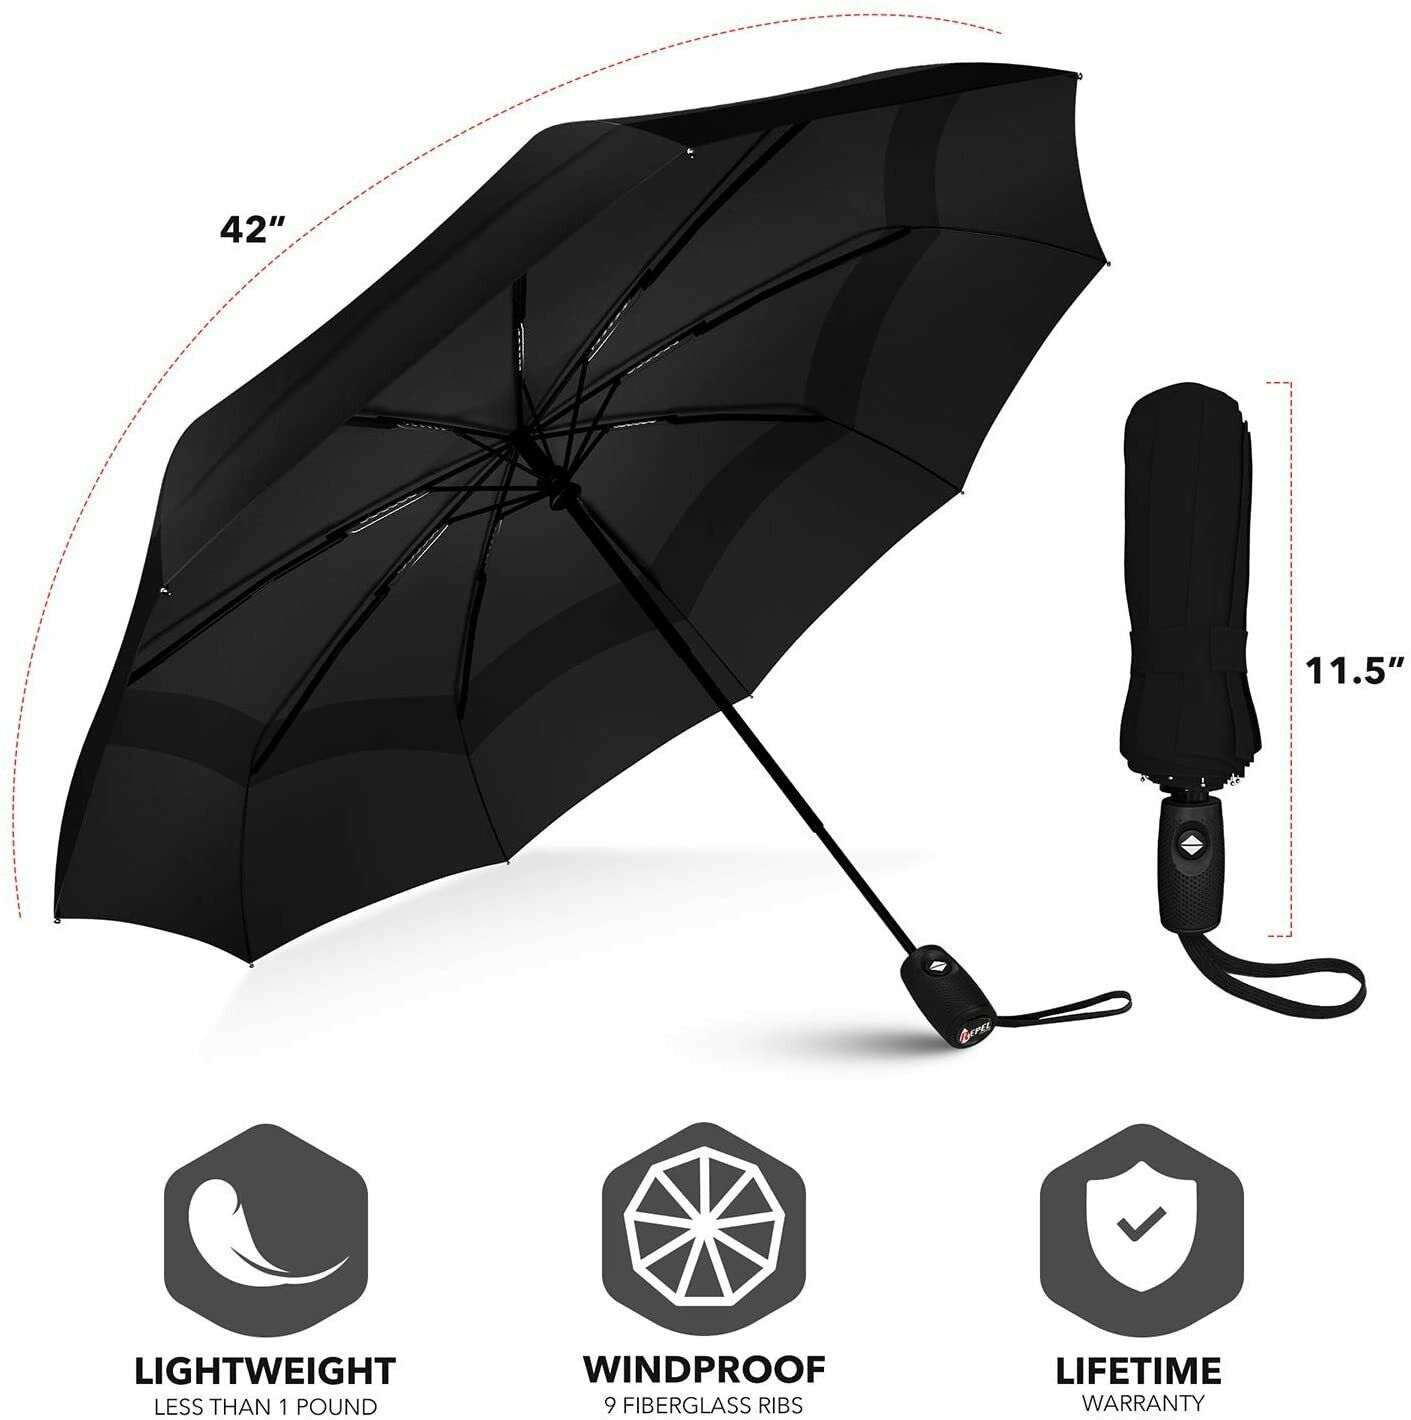 [BEST] Windproof Double Vented Travel Umbrella with Teflon Coating